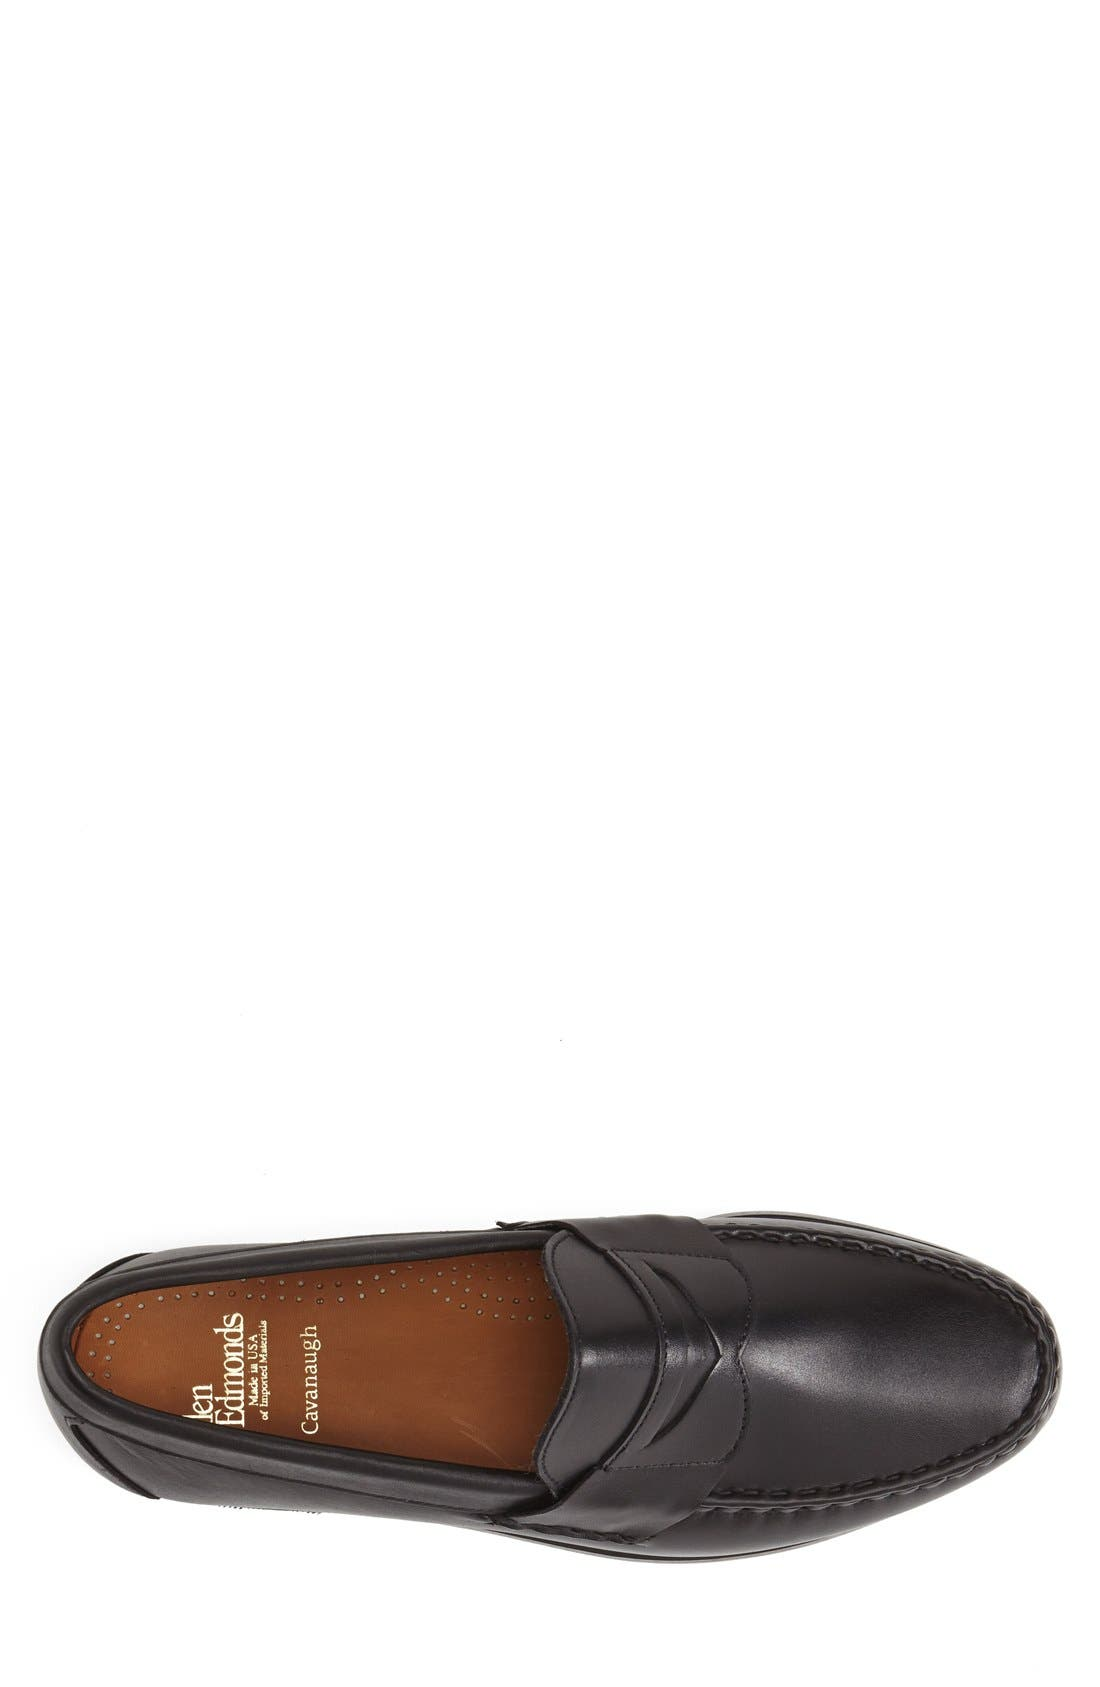 'Cavanaugh' Penny Loafer,                             Alternate thumbnail 4, color,                             BLACK LEATHER